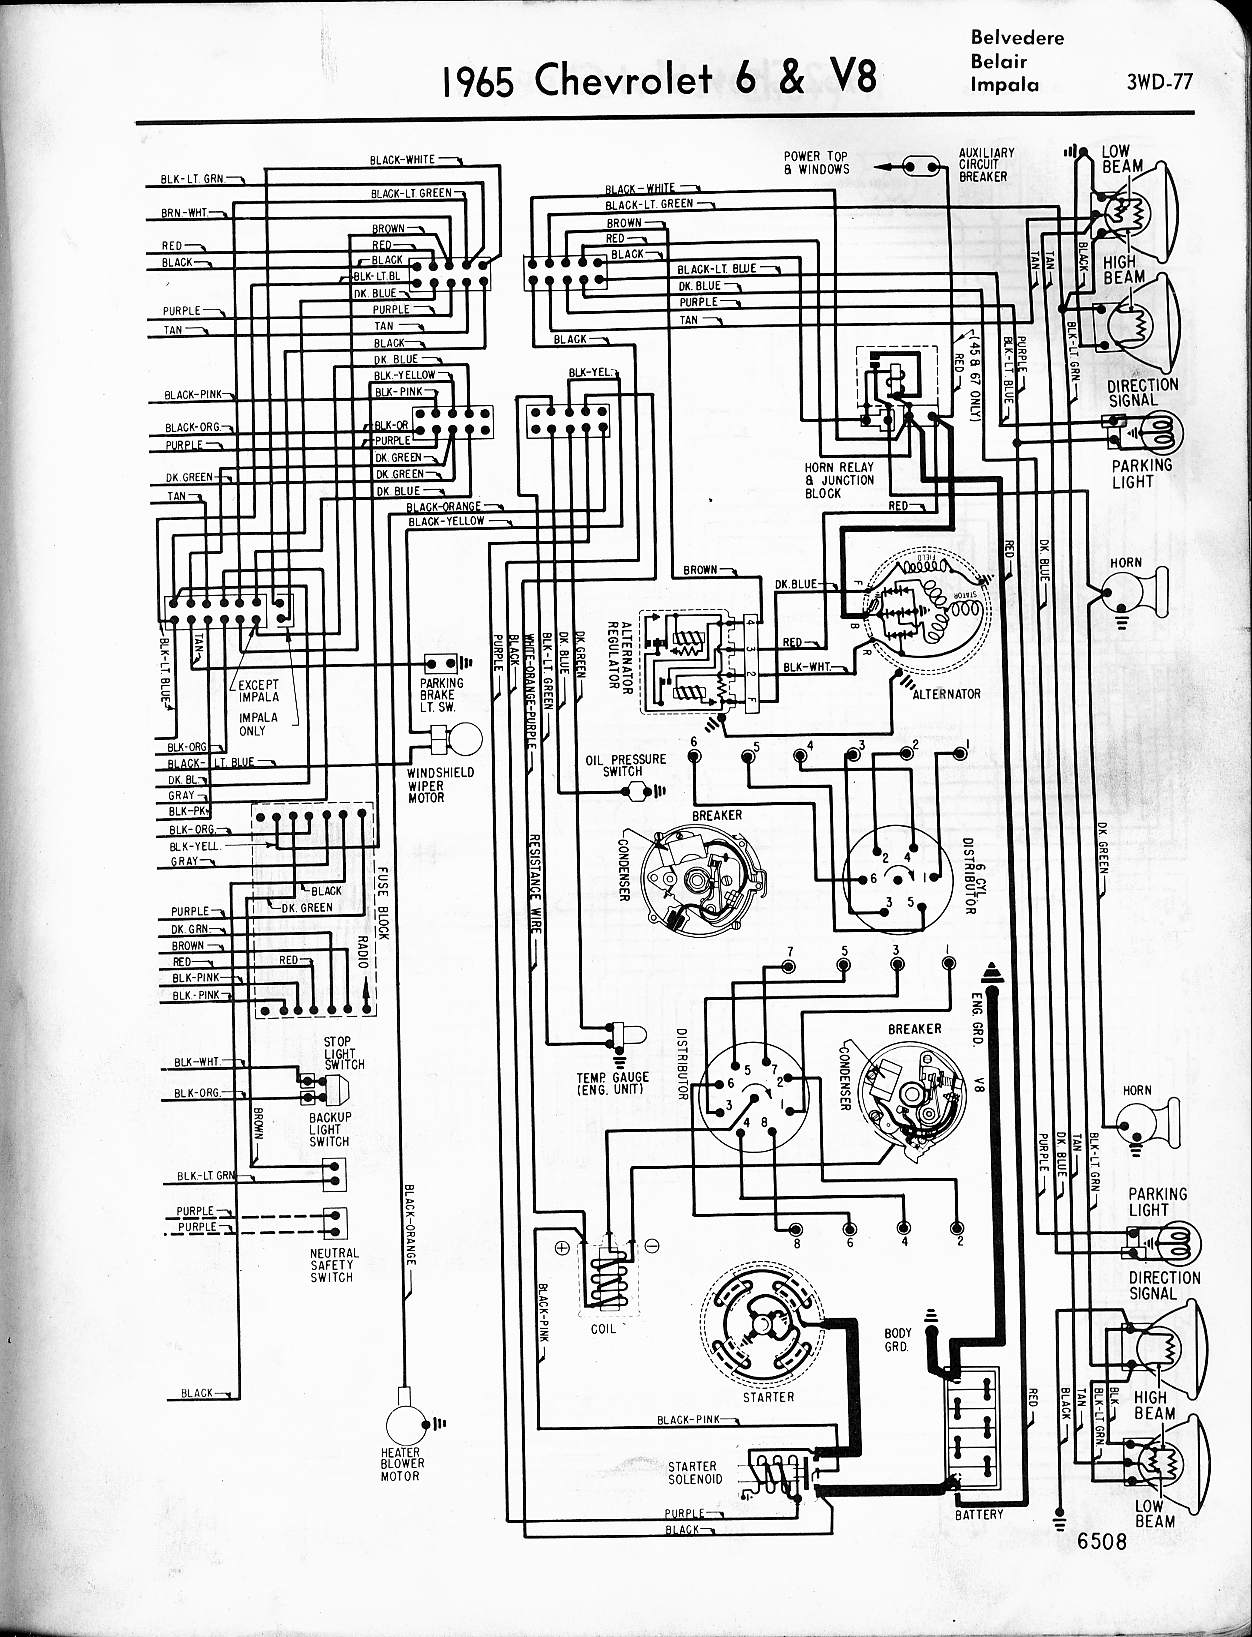 1970 Gmc Wiring Harness Change Your Idea With Diagram Design Stereo For 2000 Sonoma Chevy Diagrams Rh Wizard Com Truck